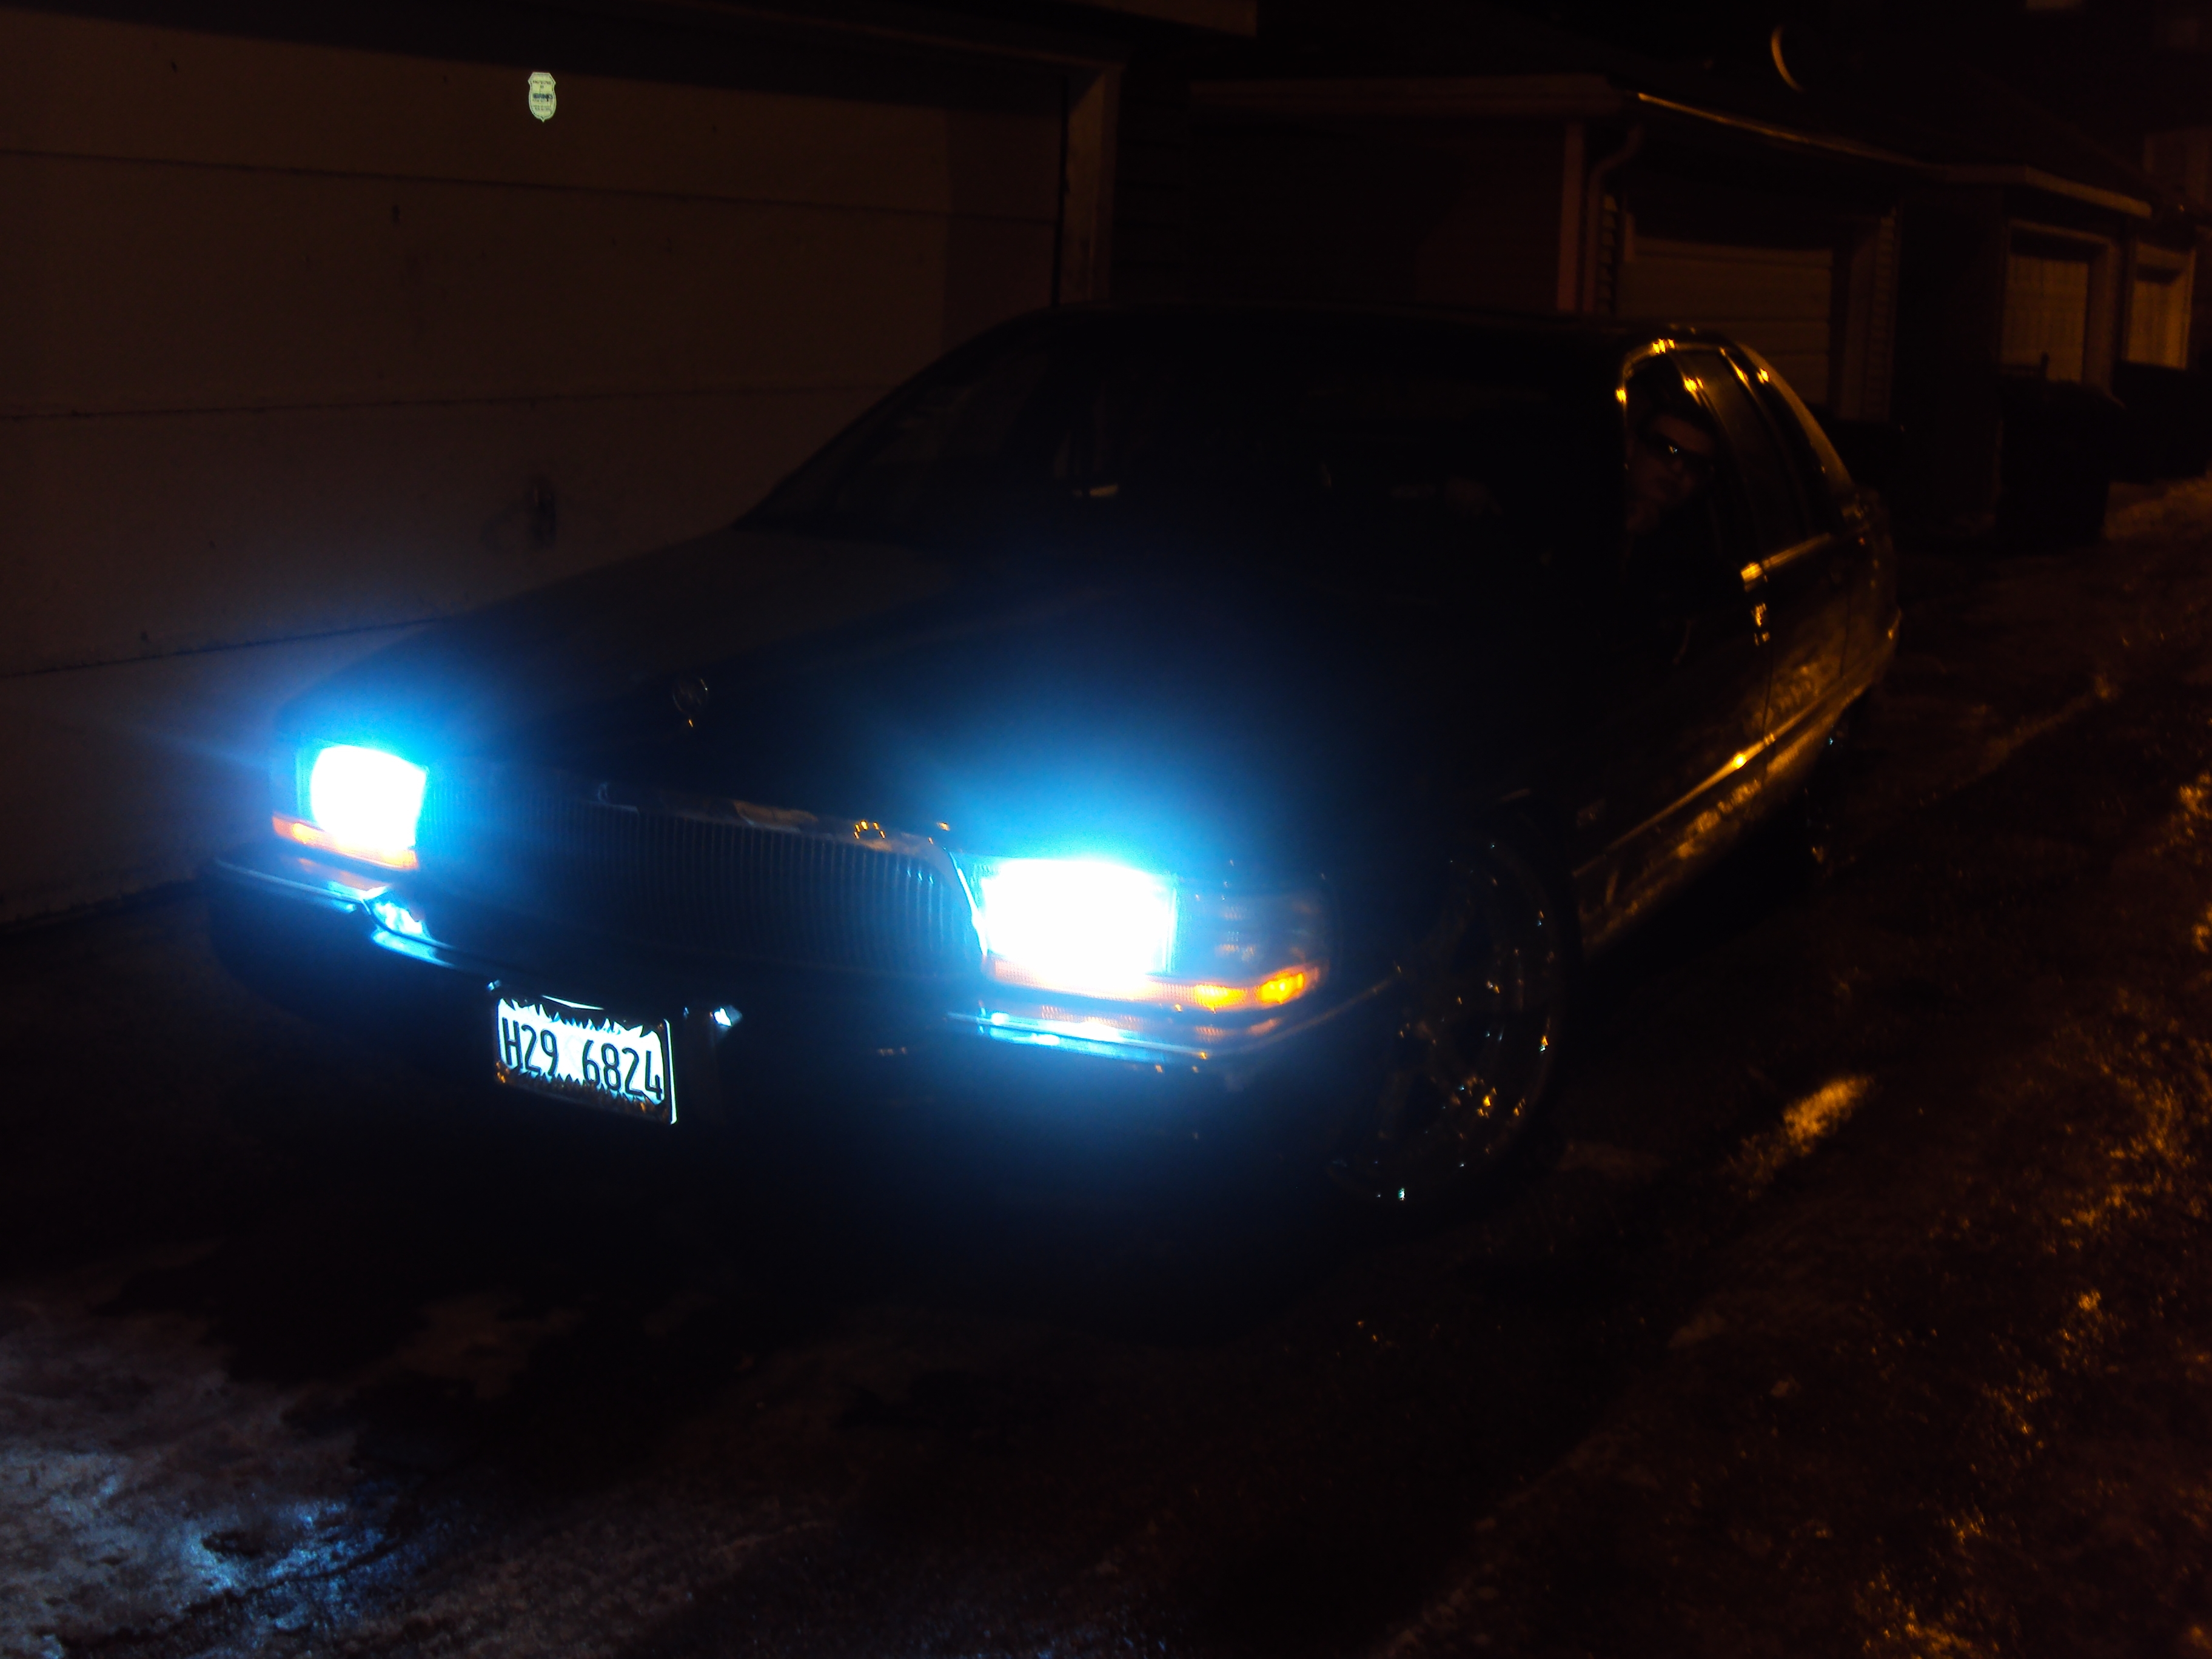 PIMP MANNY  CHY- 1992 Buick Roadmaster 13950329